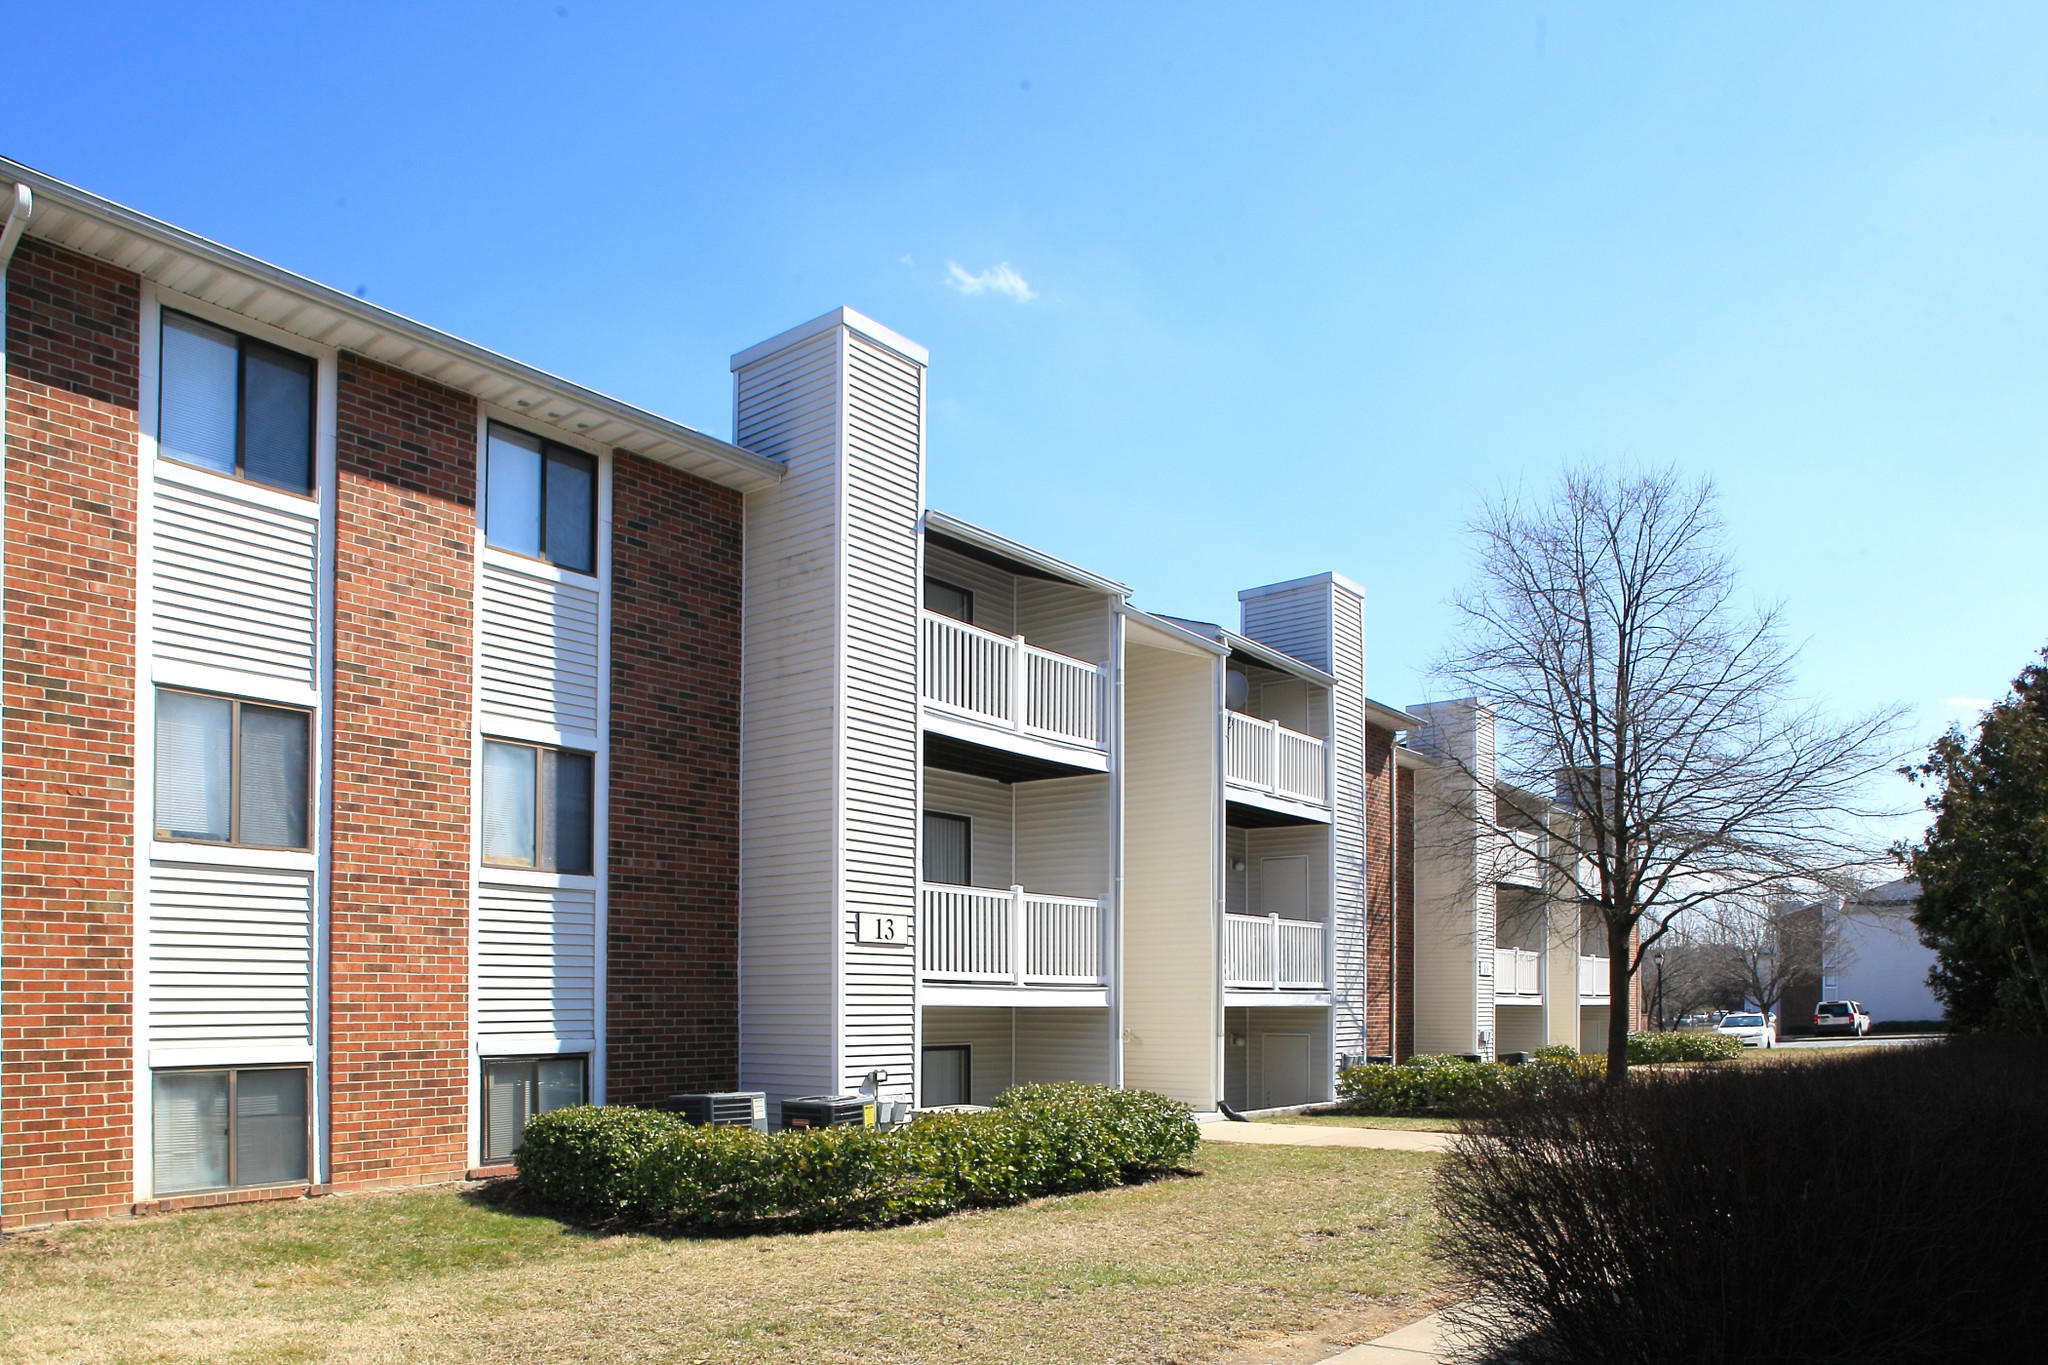 Continental Realty Corp. said Wednesday it had bought two apartment communities in White Marsh, including Lincoln Woods, originally built in 1986.